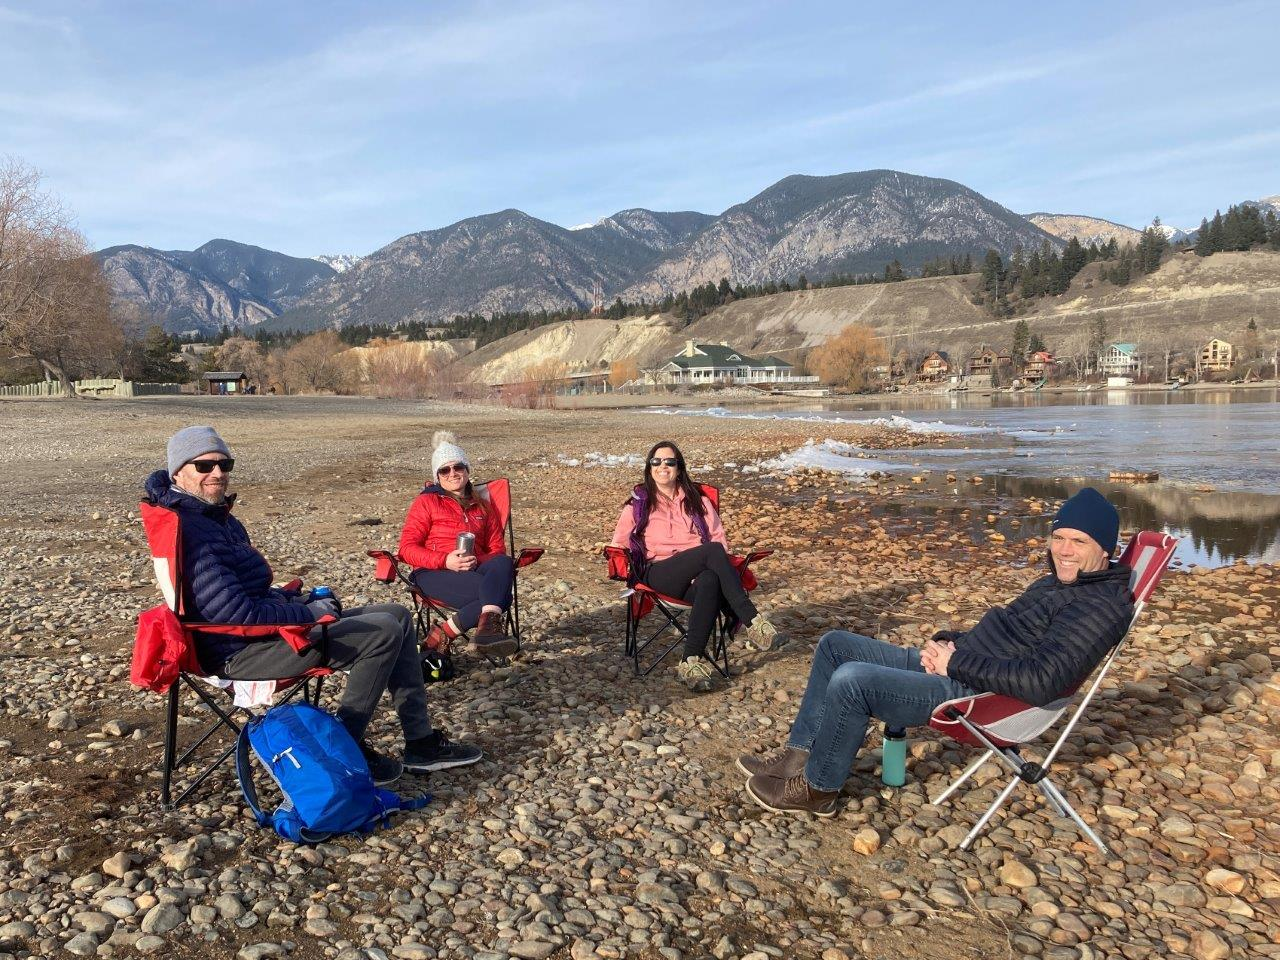 Spring beer on the beach in Invermere